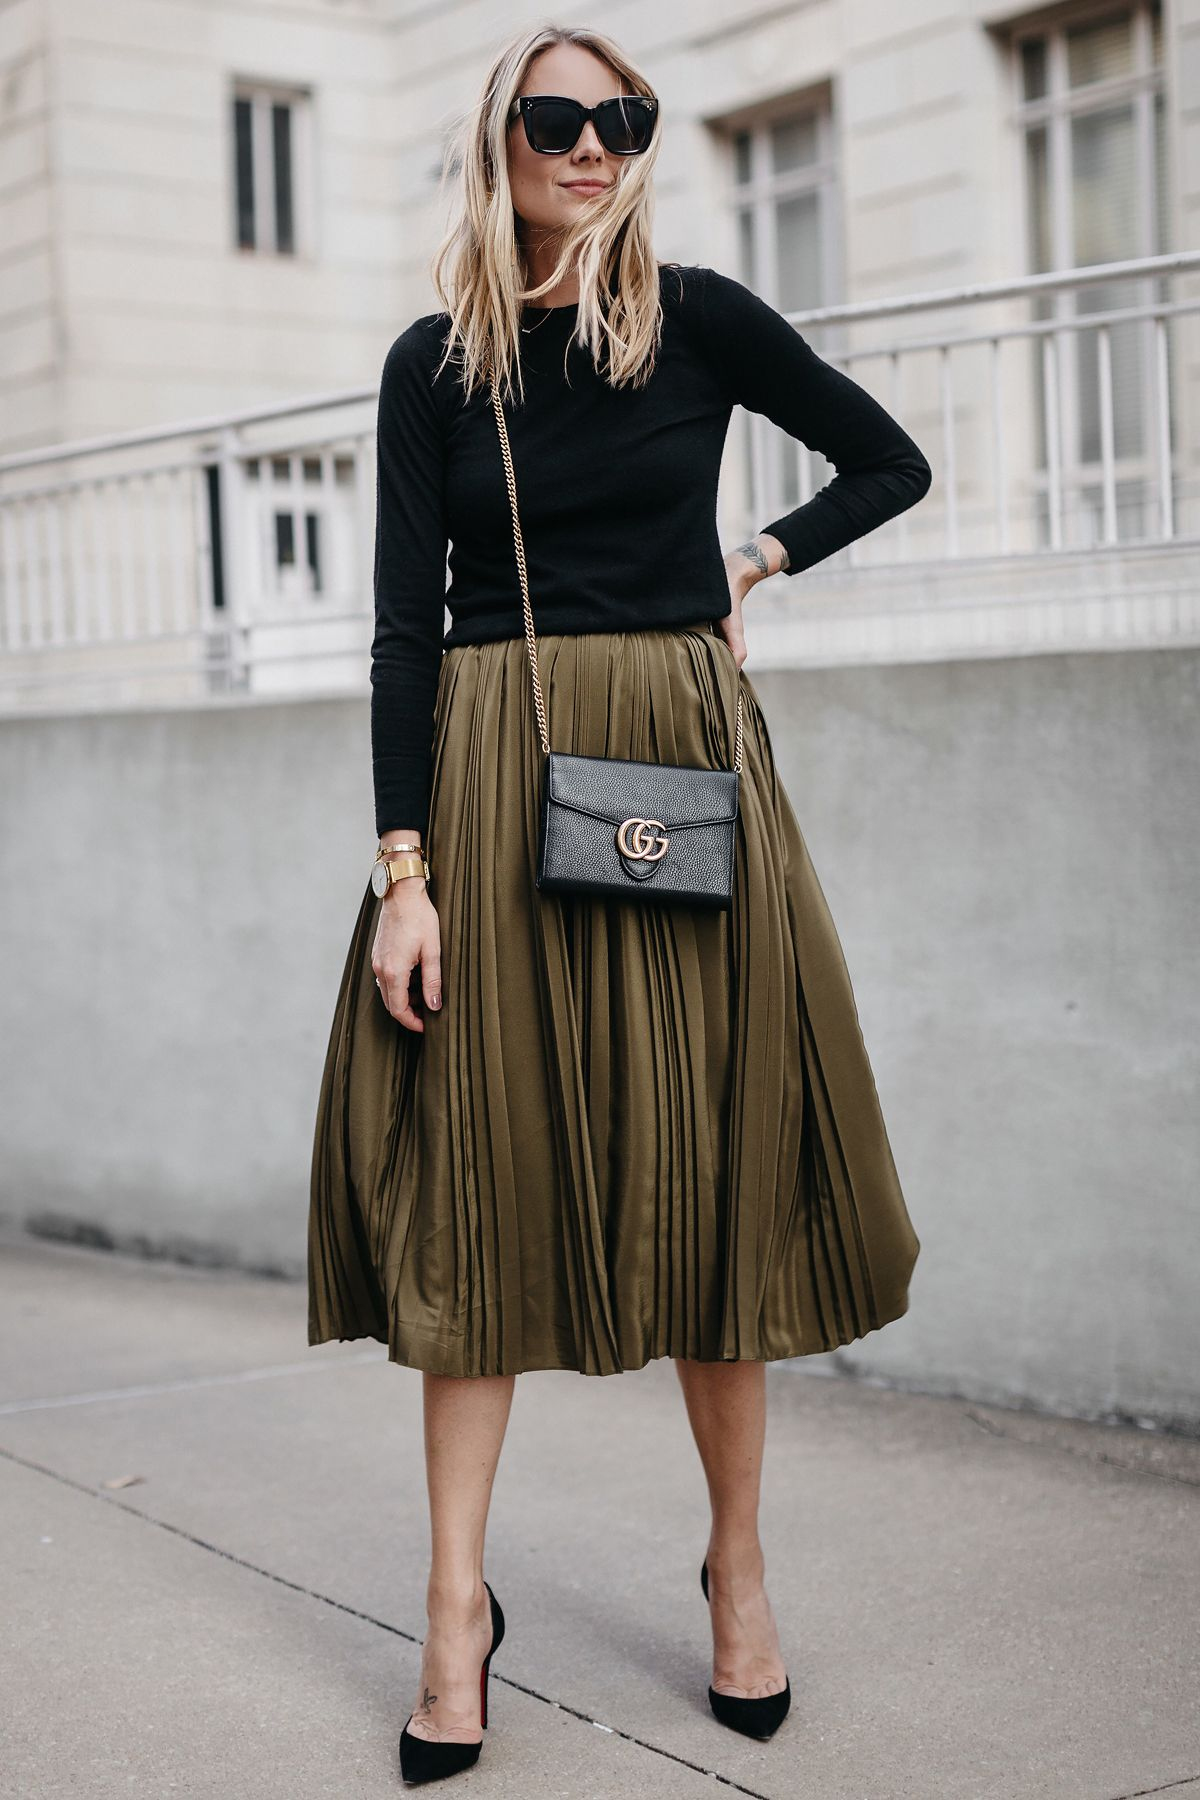 d2fb58d19 Black Sweater Robert Rodriguez Green Pleated Midi Skirt Gucci Marmont  Handbag Christian Louboutin Black Pumps Fashion Jackson